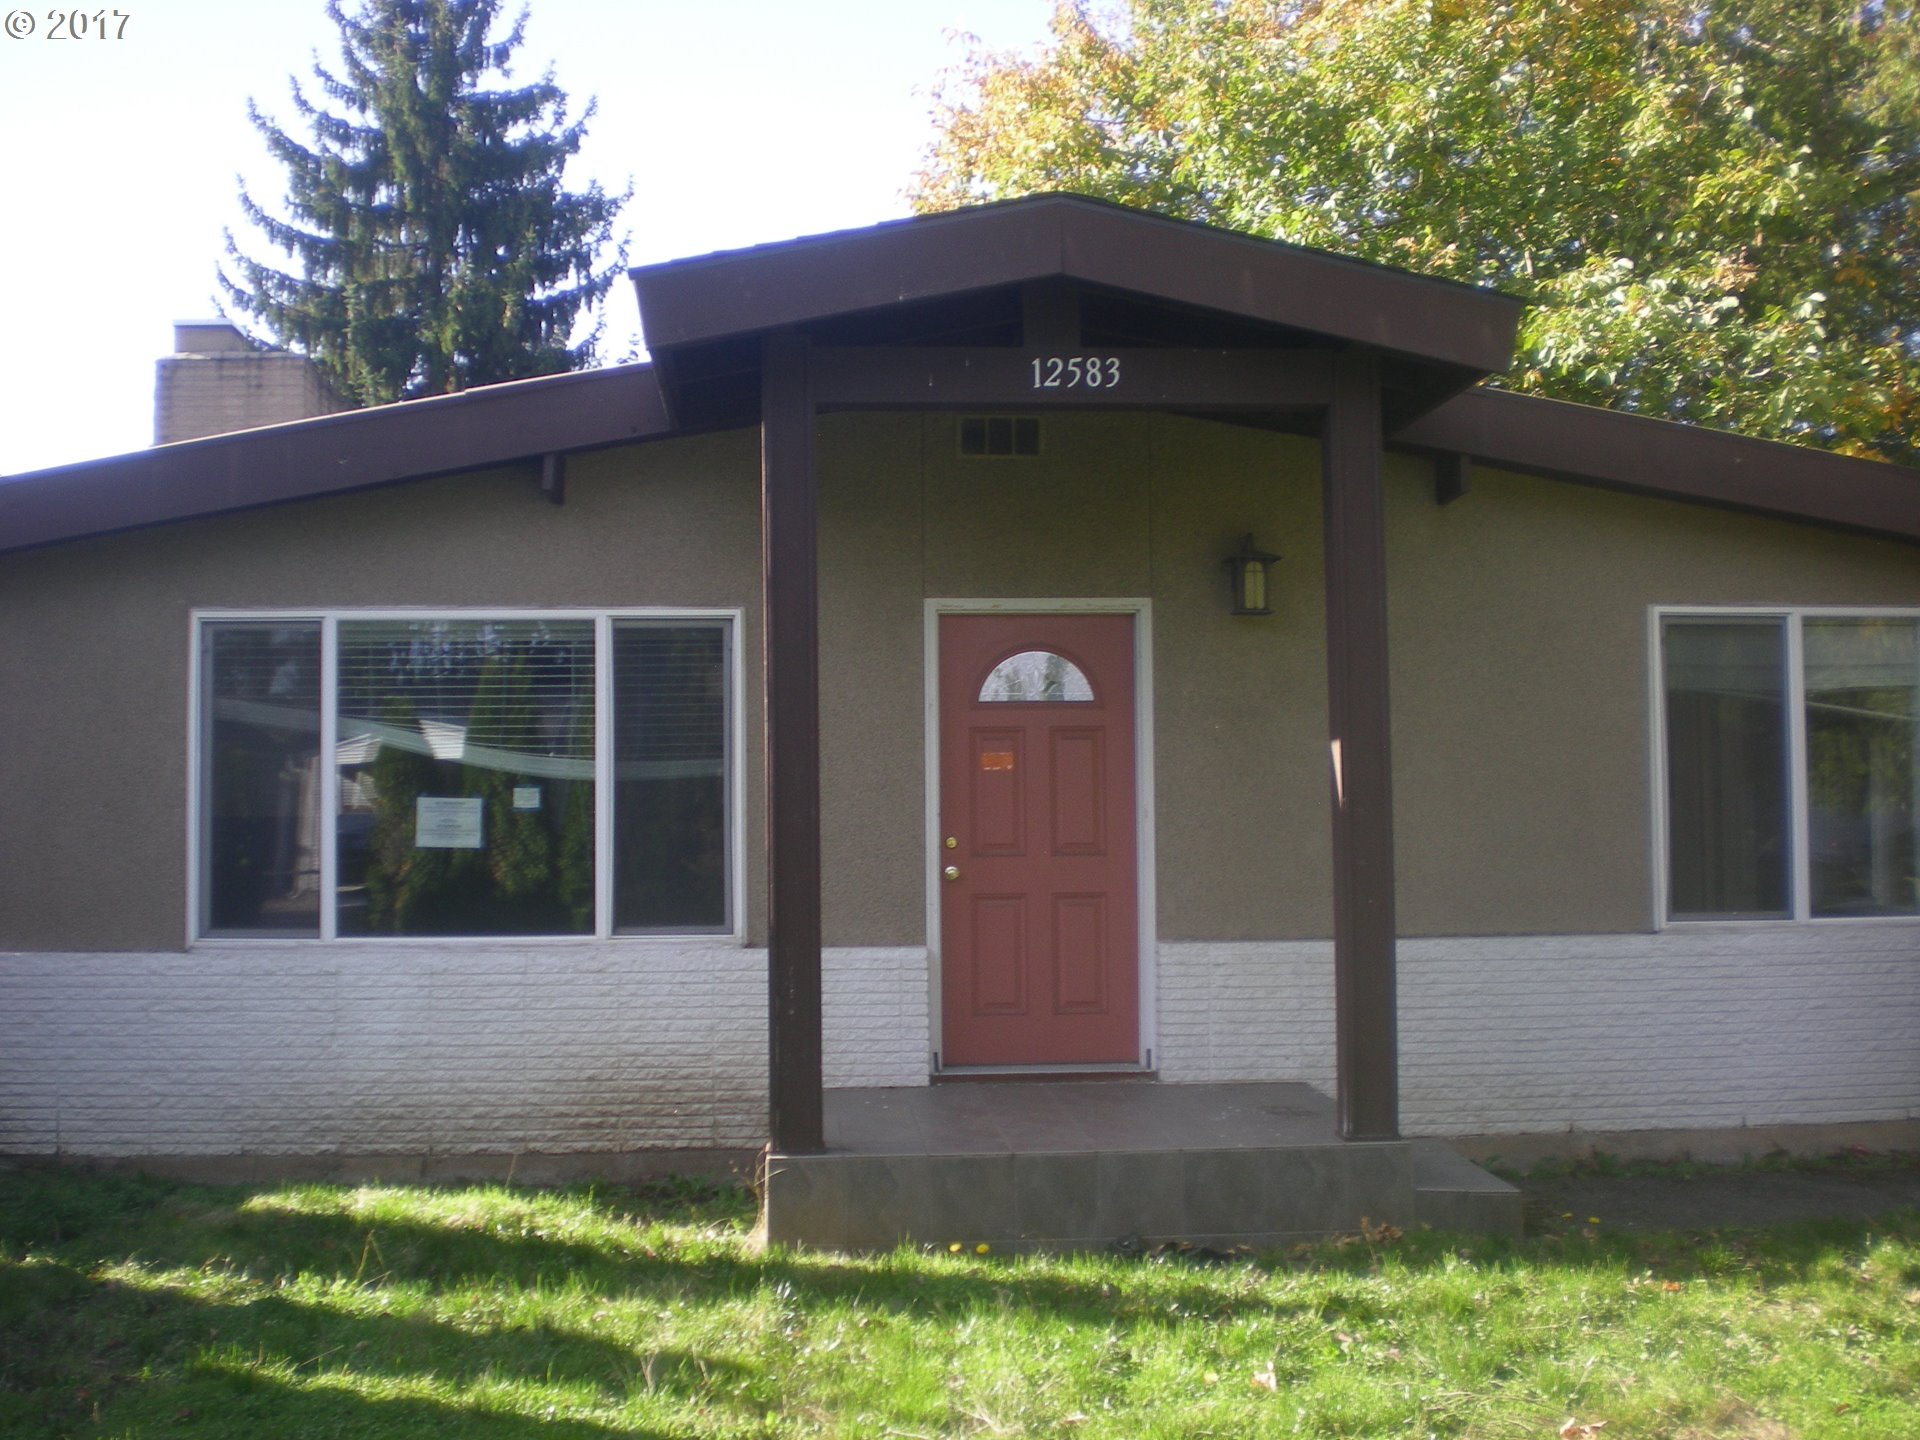 This bank owned home needs some work.  Water intrusion through the roof.  Will not quality for a loan.  However, it is a great opportunity for a starter or rental home.  Short distance to Max station and other services. Charming neighborhood. Garage with utility room, plus carport. Seller to do no repairs.  Sold AS IS.